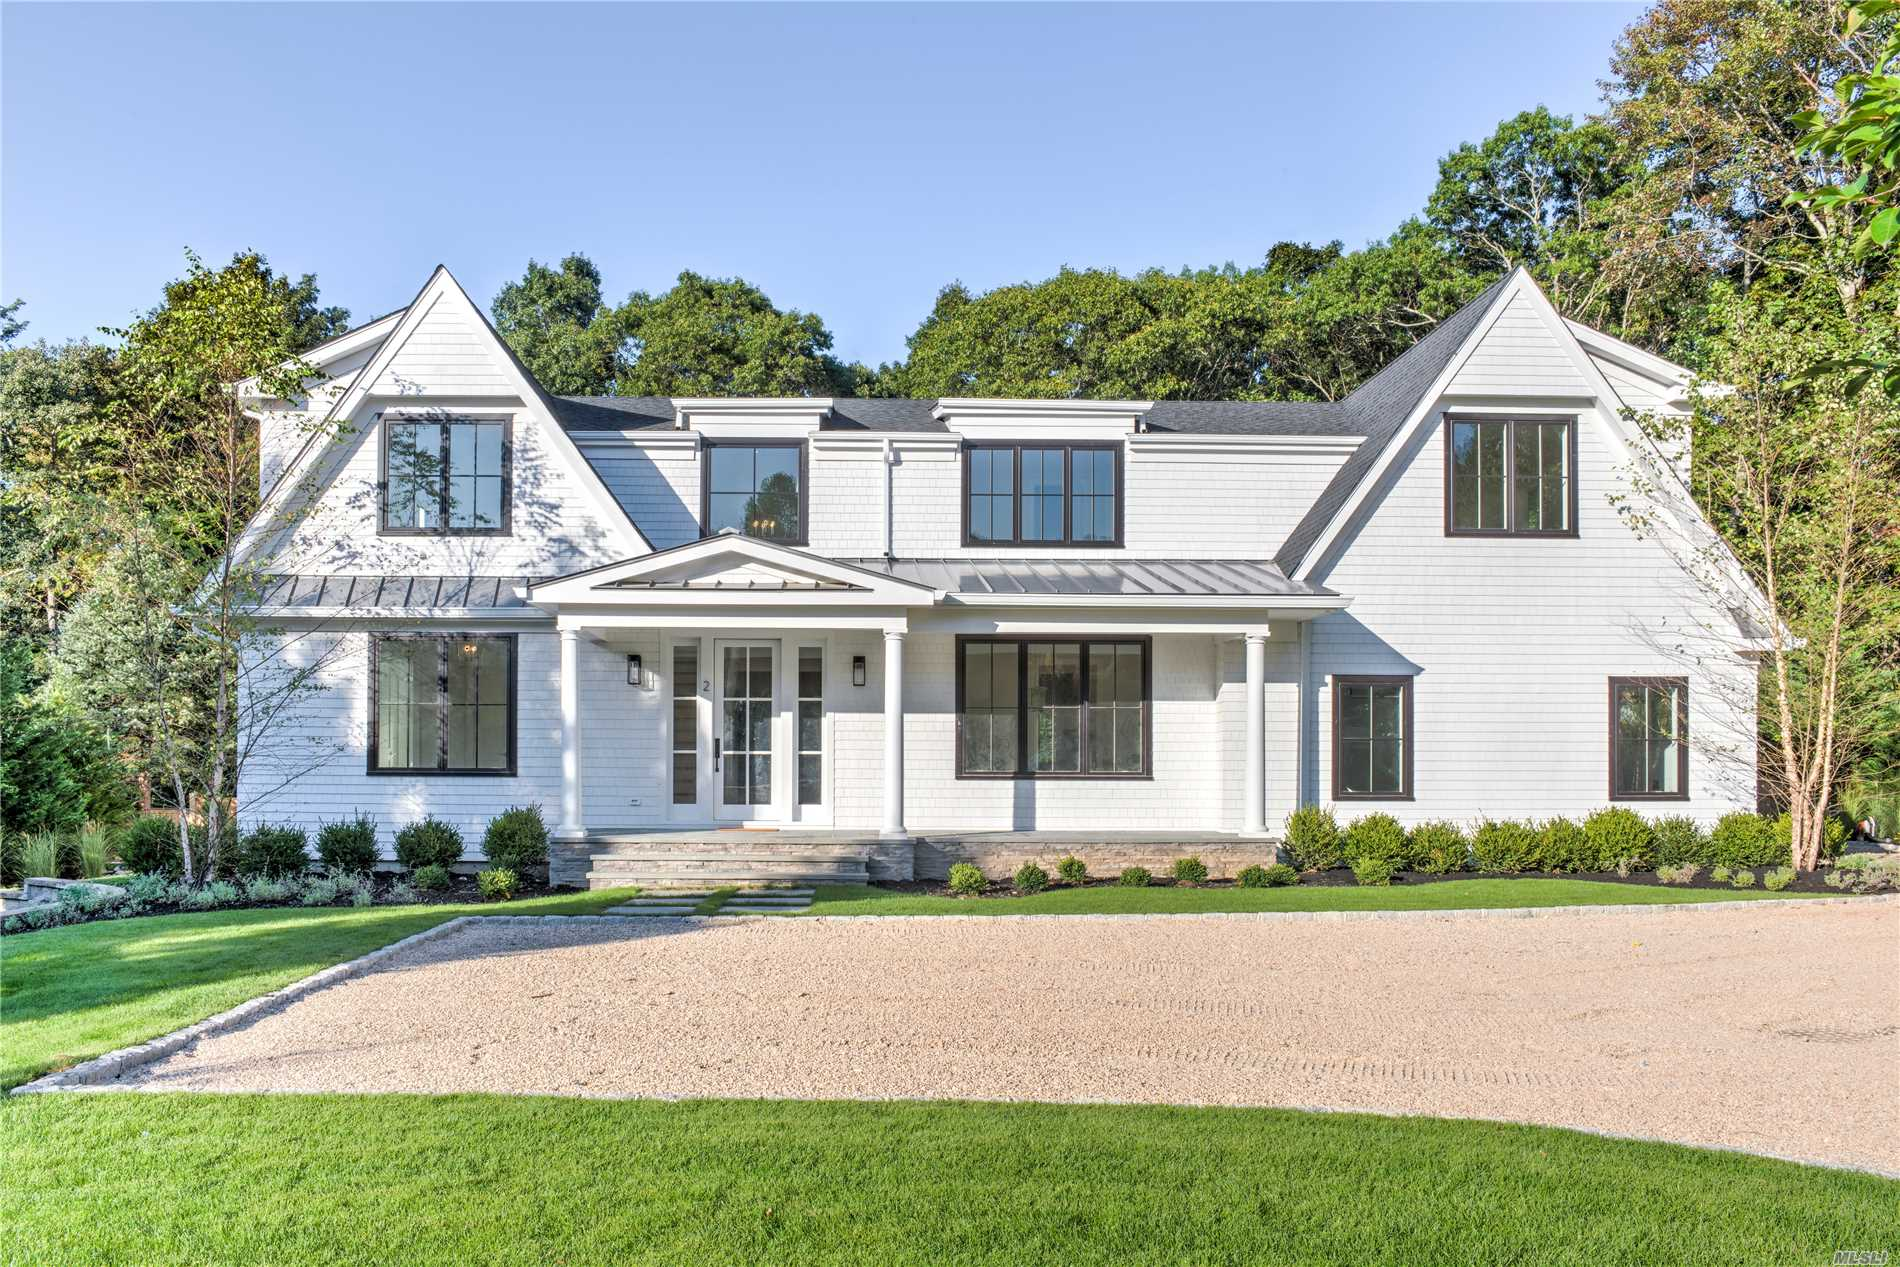 New Construction - Sag Harbor New Luxury Residence In Rawson Estates Beachfront Community On Little Peconic Bay L Curto Building Company L New Transitional Modern Home L 4, 000Sf L 5 Bedroom L 5.5 Bath L Heated Gunite Pool L Little Peconic Bay Access L Open Floor Plan L Sub-Zero/Wolf Package L 2 Dw L Eat-In Chef's Kitchen L Custom Cuiffo Cabinetry/Vanities L Butler's Pantry/Wet Bar L Master Suite L Defining Modern Living L Formal Dining L Fireplace L Mahogany Covered Porch L Landscaping